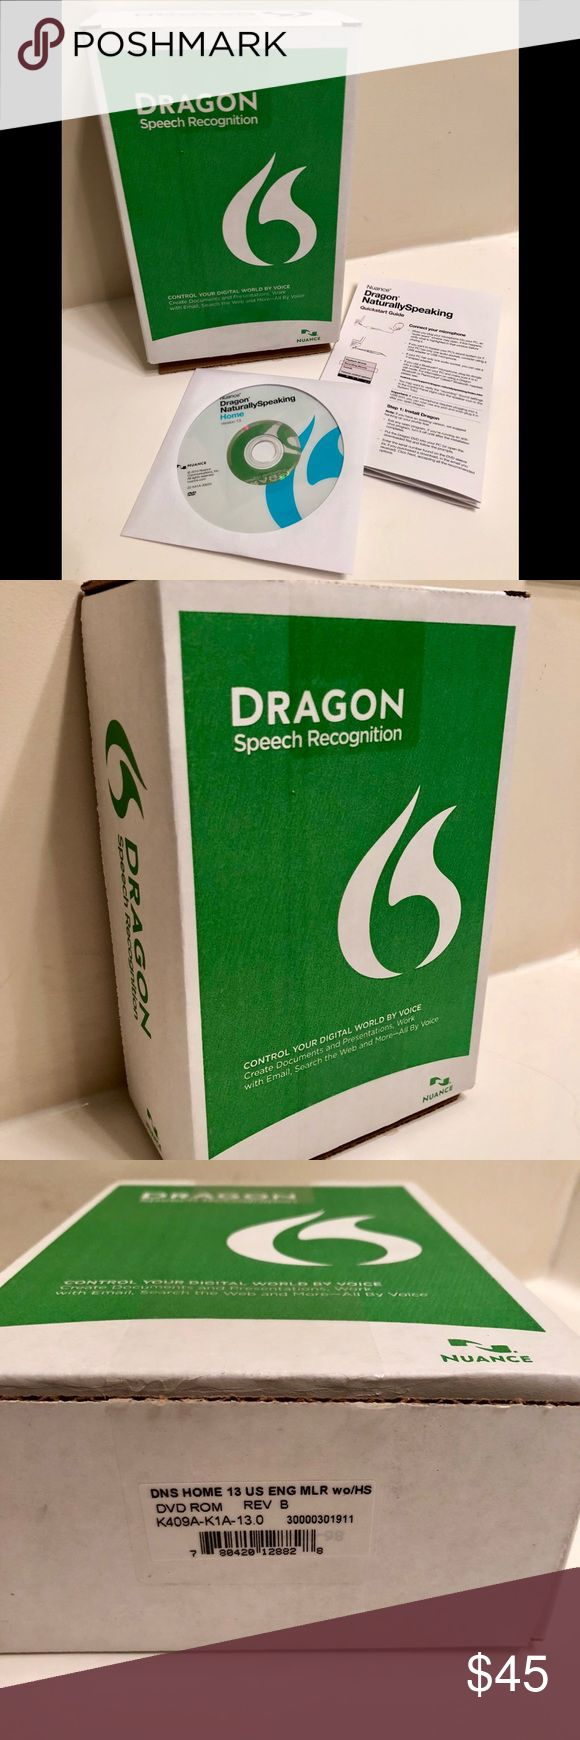 NWT Nuance Dragon NaturallySpeaking Home 13.0 Dragon Naturally Speaking 13 Home (English) is perfect if you're new to speech recognition and want an easy and enjoyable way to connect with your computer by talking instead of typing. It lets you dictate documents naturally with up to 99% accuracy and control applications using simple voice commands so you can accomplish more on your computer in less time for home, school or fun. It also makes a great gift! Opened to look at contents, but never…